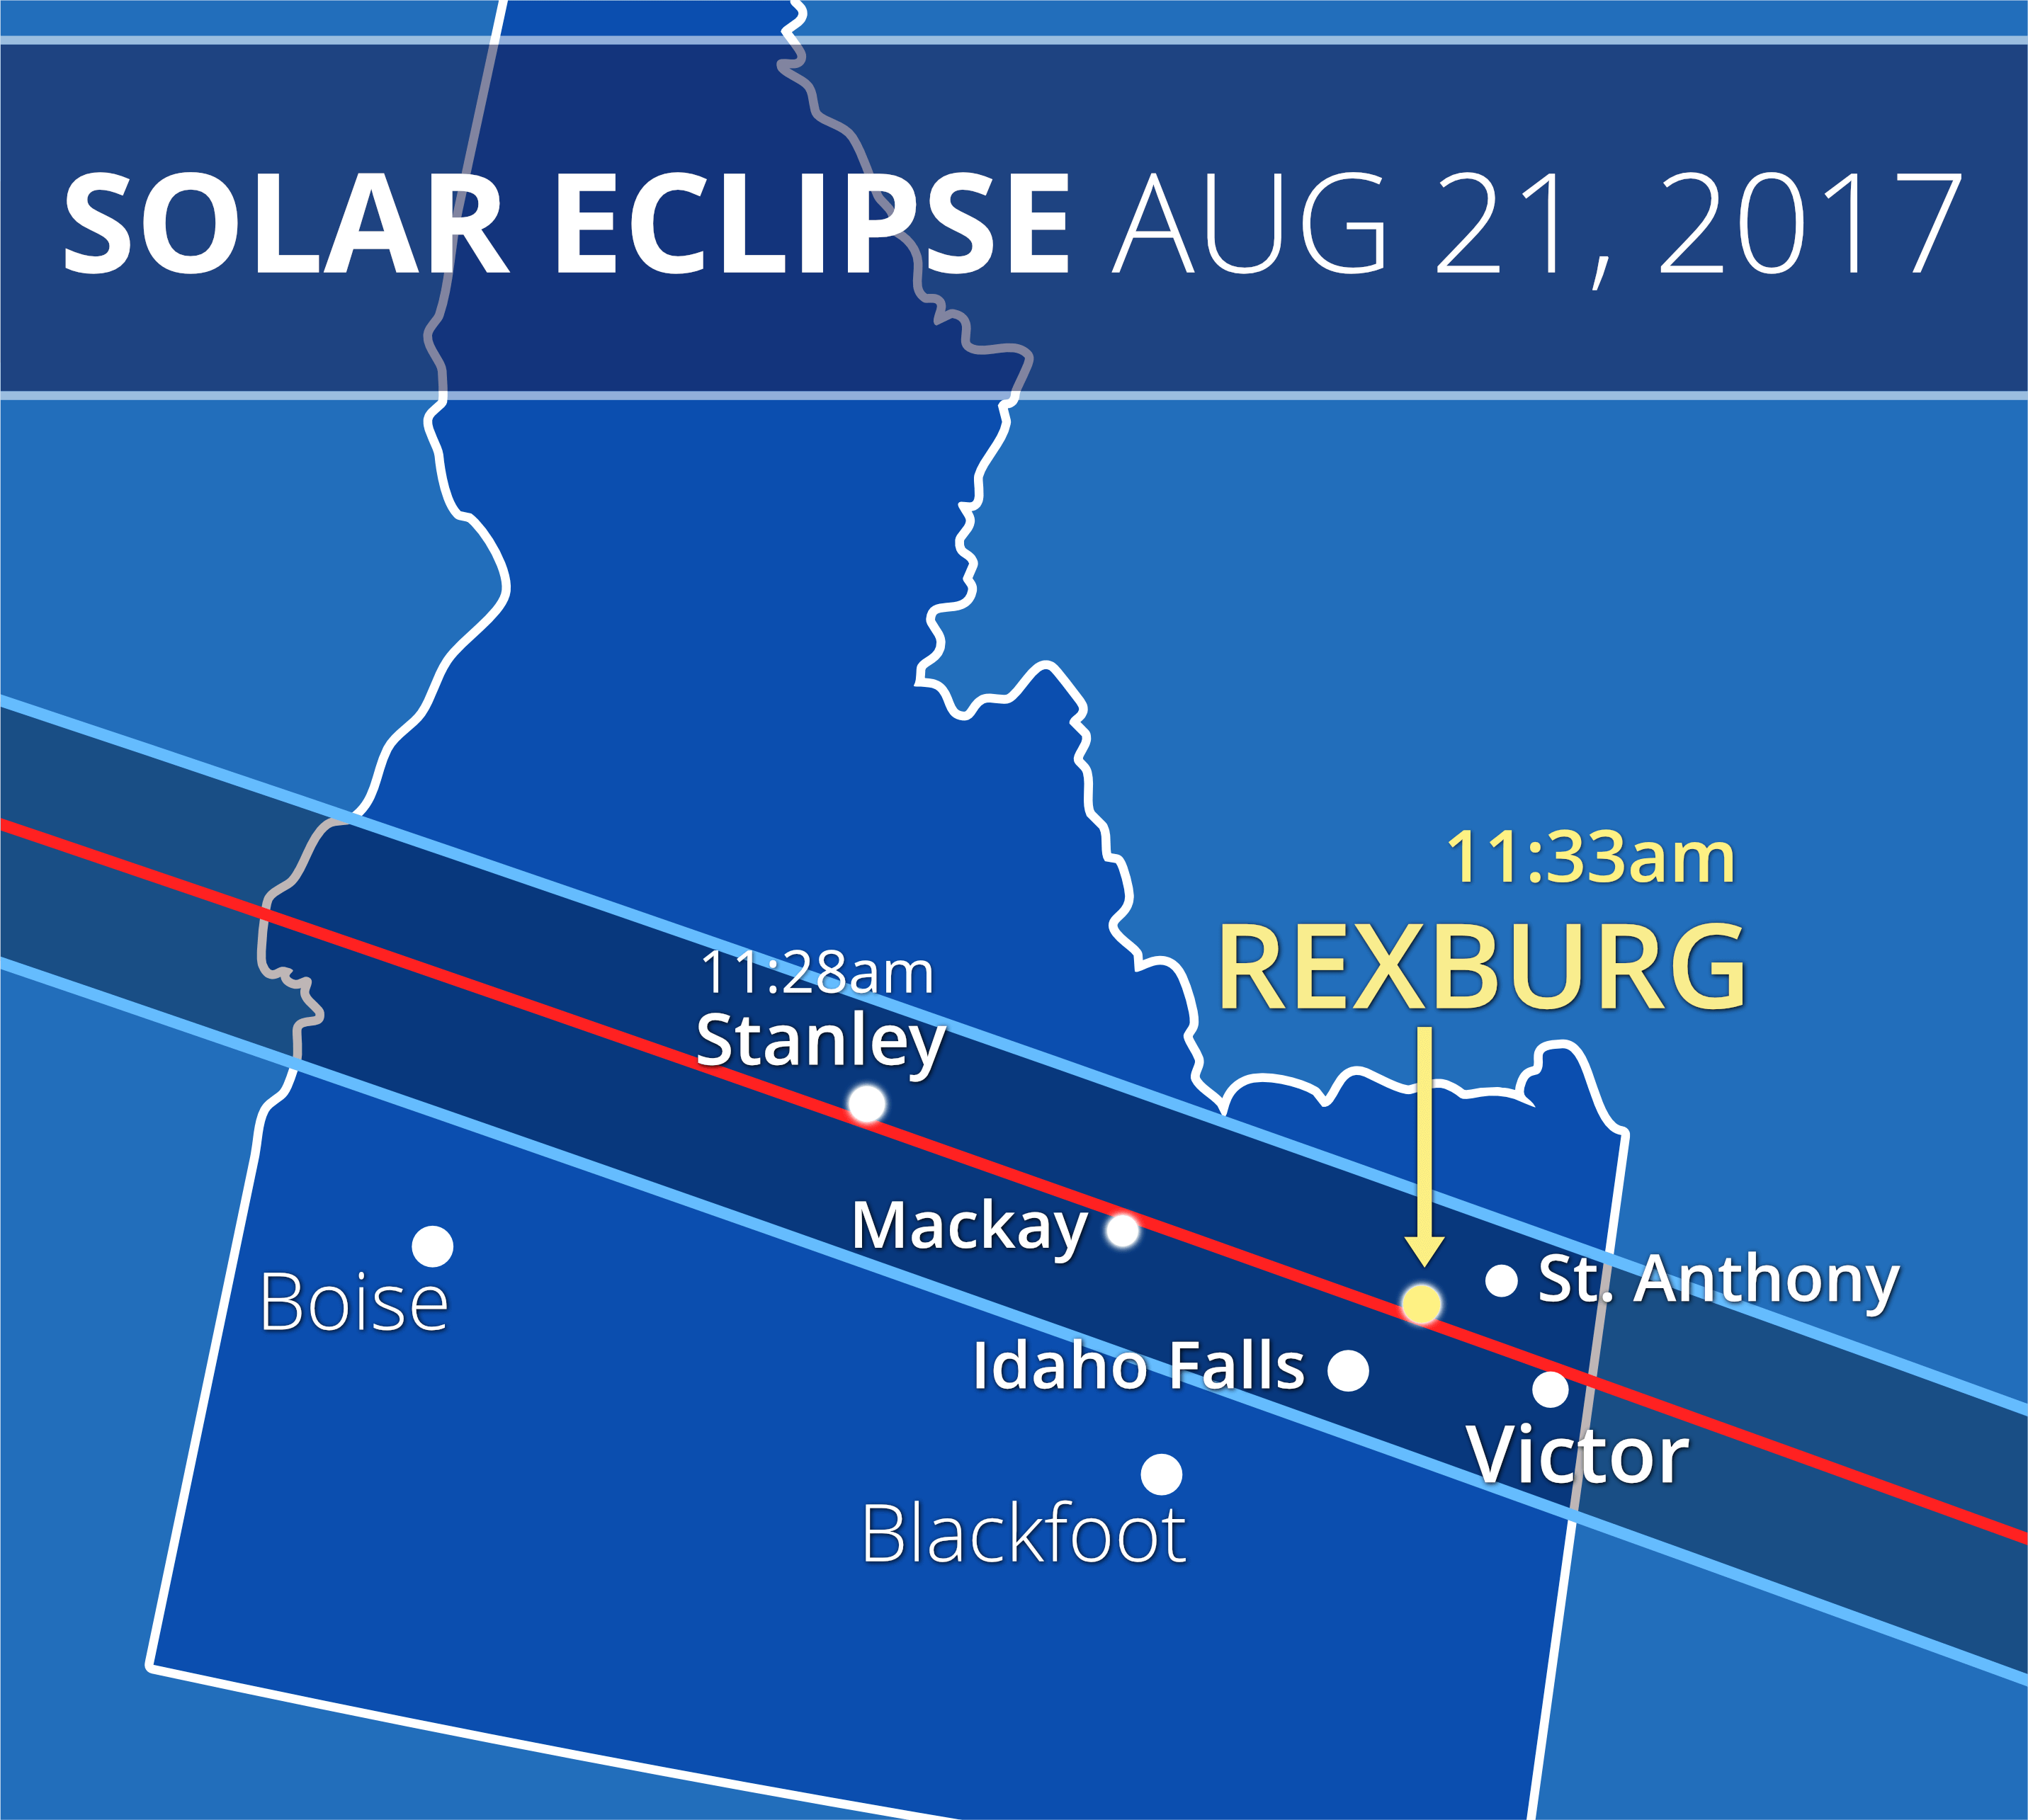 Everything you need to know about the rexburg solar eclipse any city within the shaed area will see the total solar eclipse but cities closer to to the center line will see it longer areas outside the band will see pooptronica